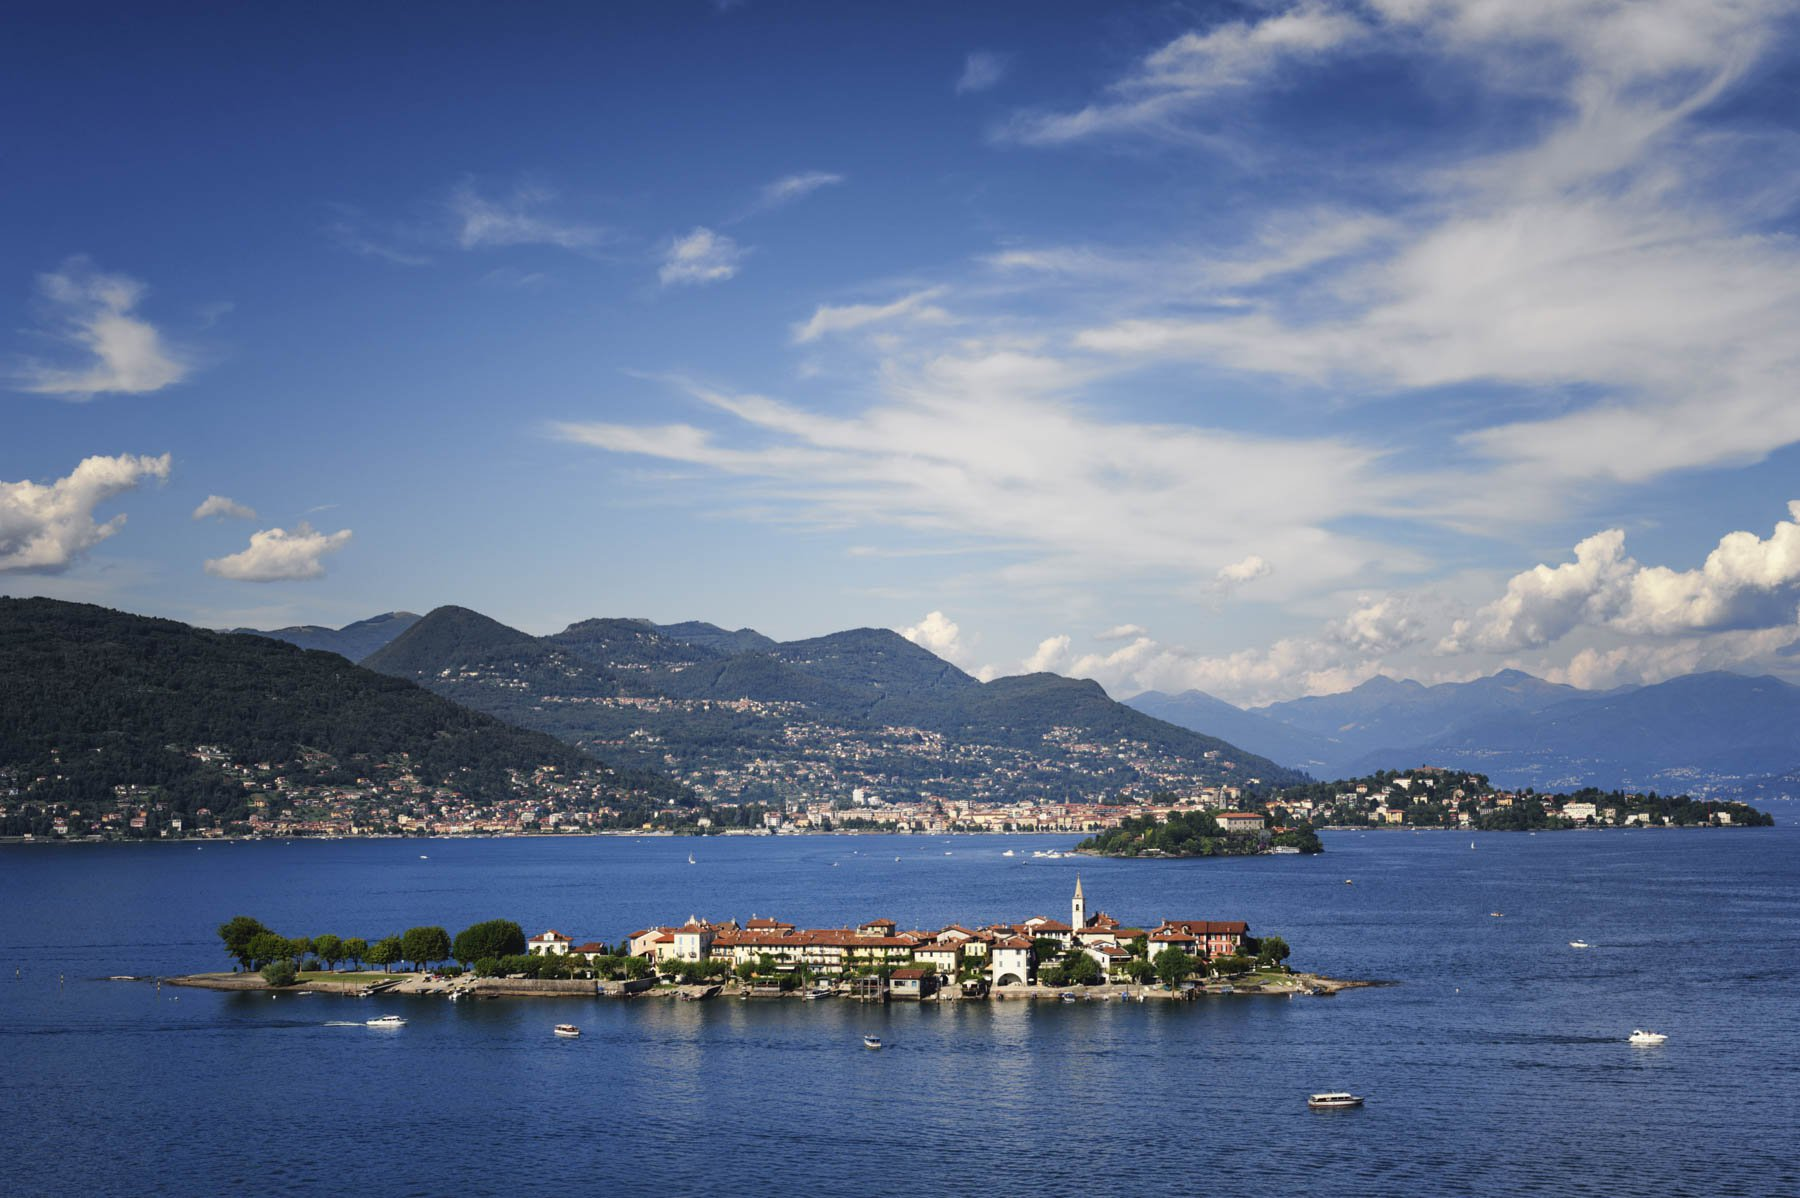 Apartment for sale in Baveno, inside a historic lake front villa - view of the islands